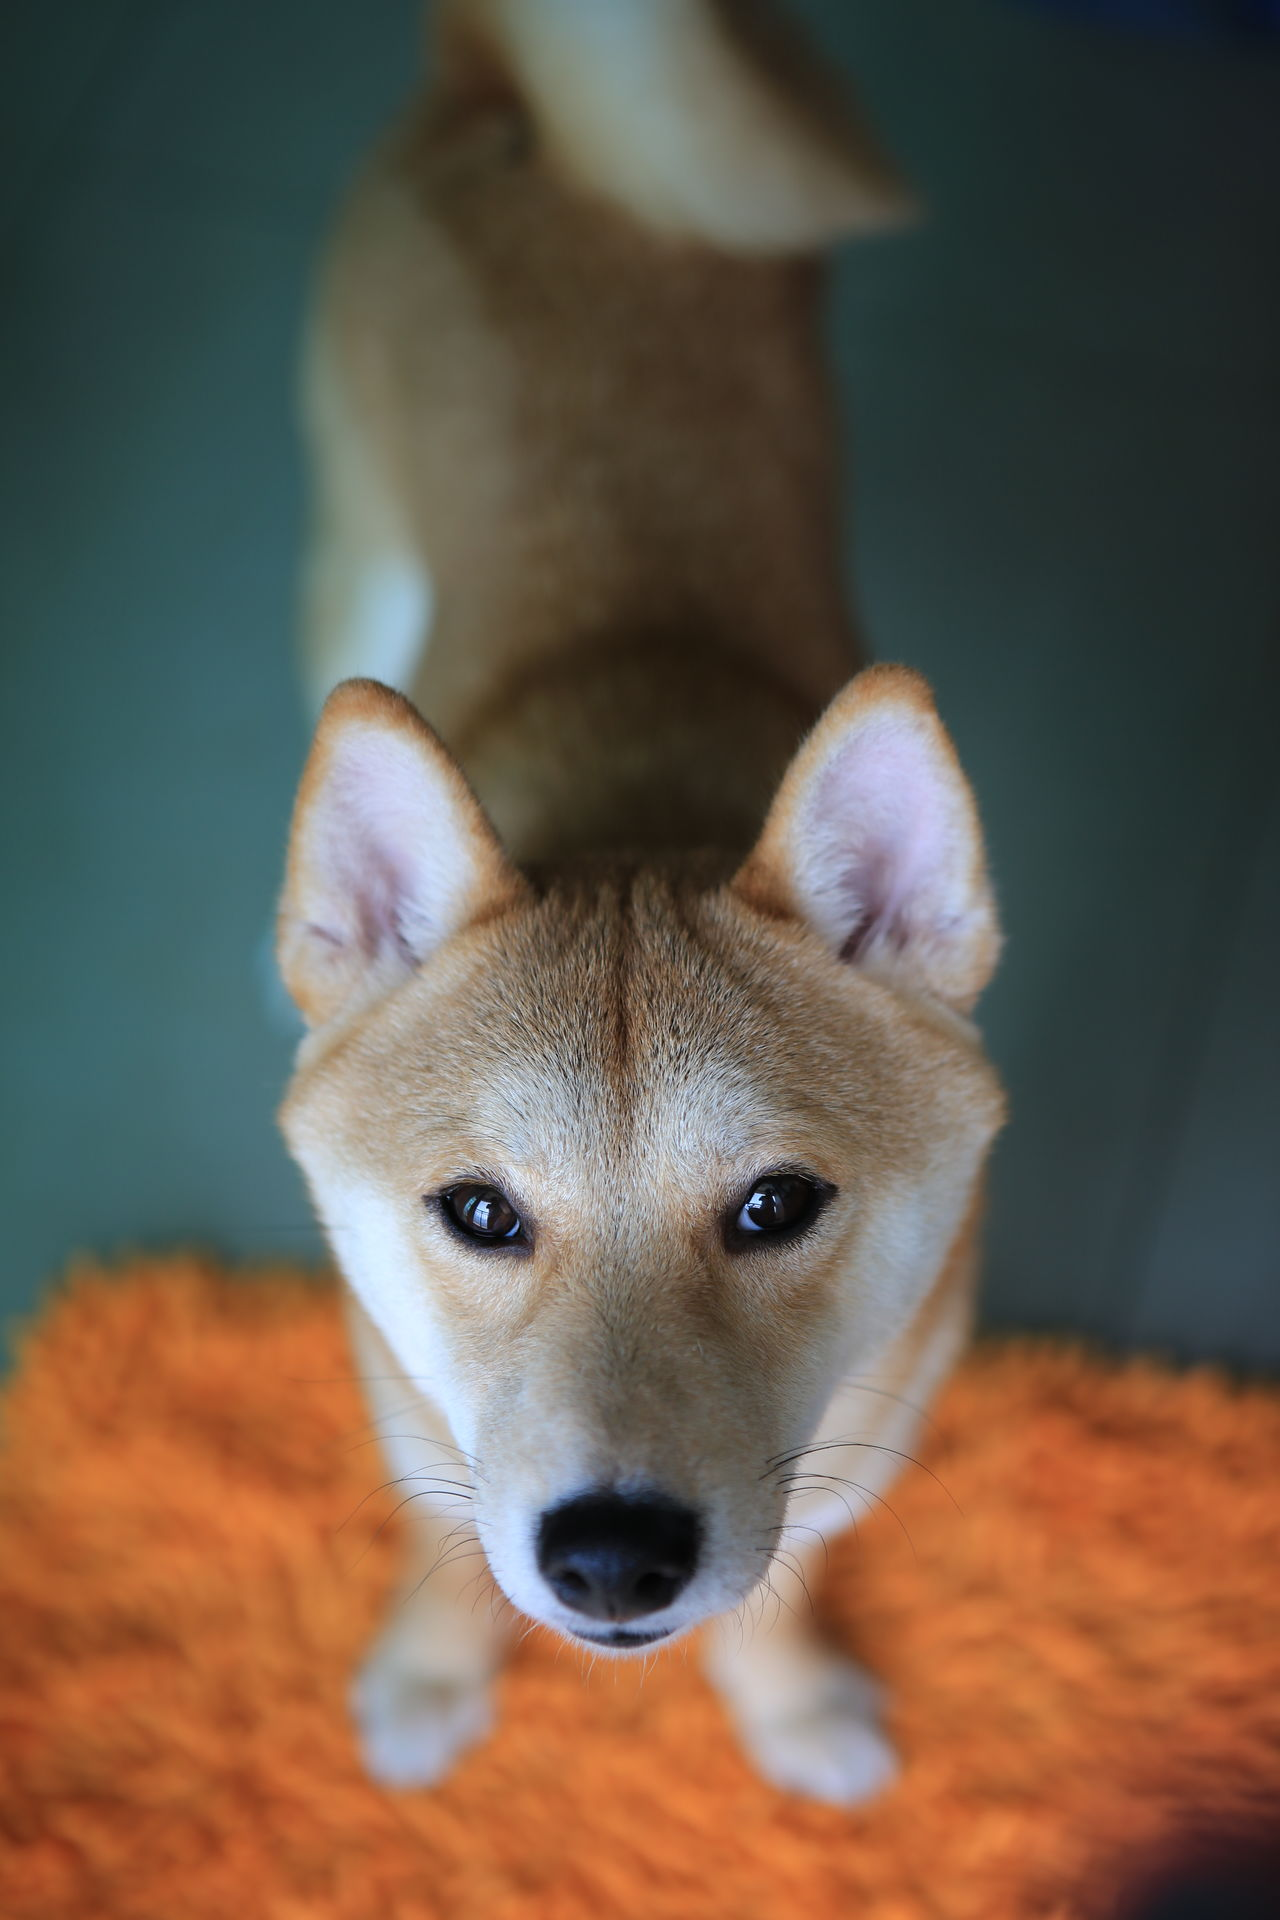 I miss You Animals Dog Dog Love Doggy I Miss U Look At U Looking Looking Up Shiba Inu Shiba Inu LOVE Shibainu Fresh On Market May 2016 Market Reviewers' Top Picks Fresh On Market 2016